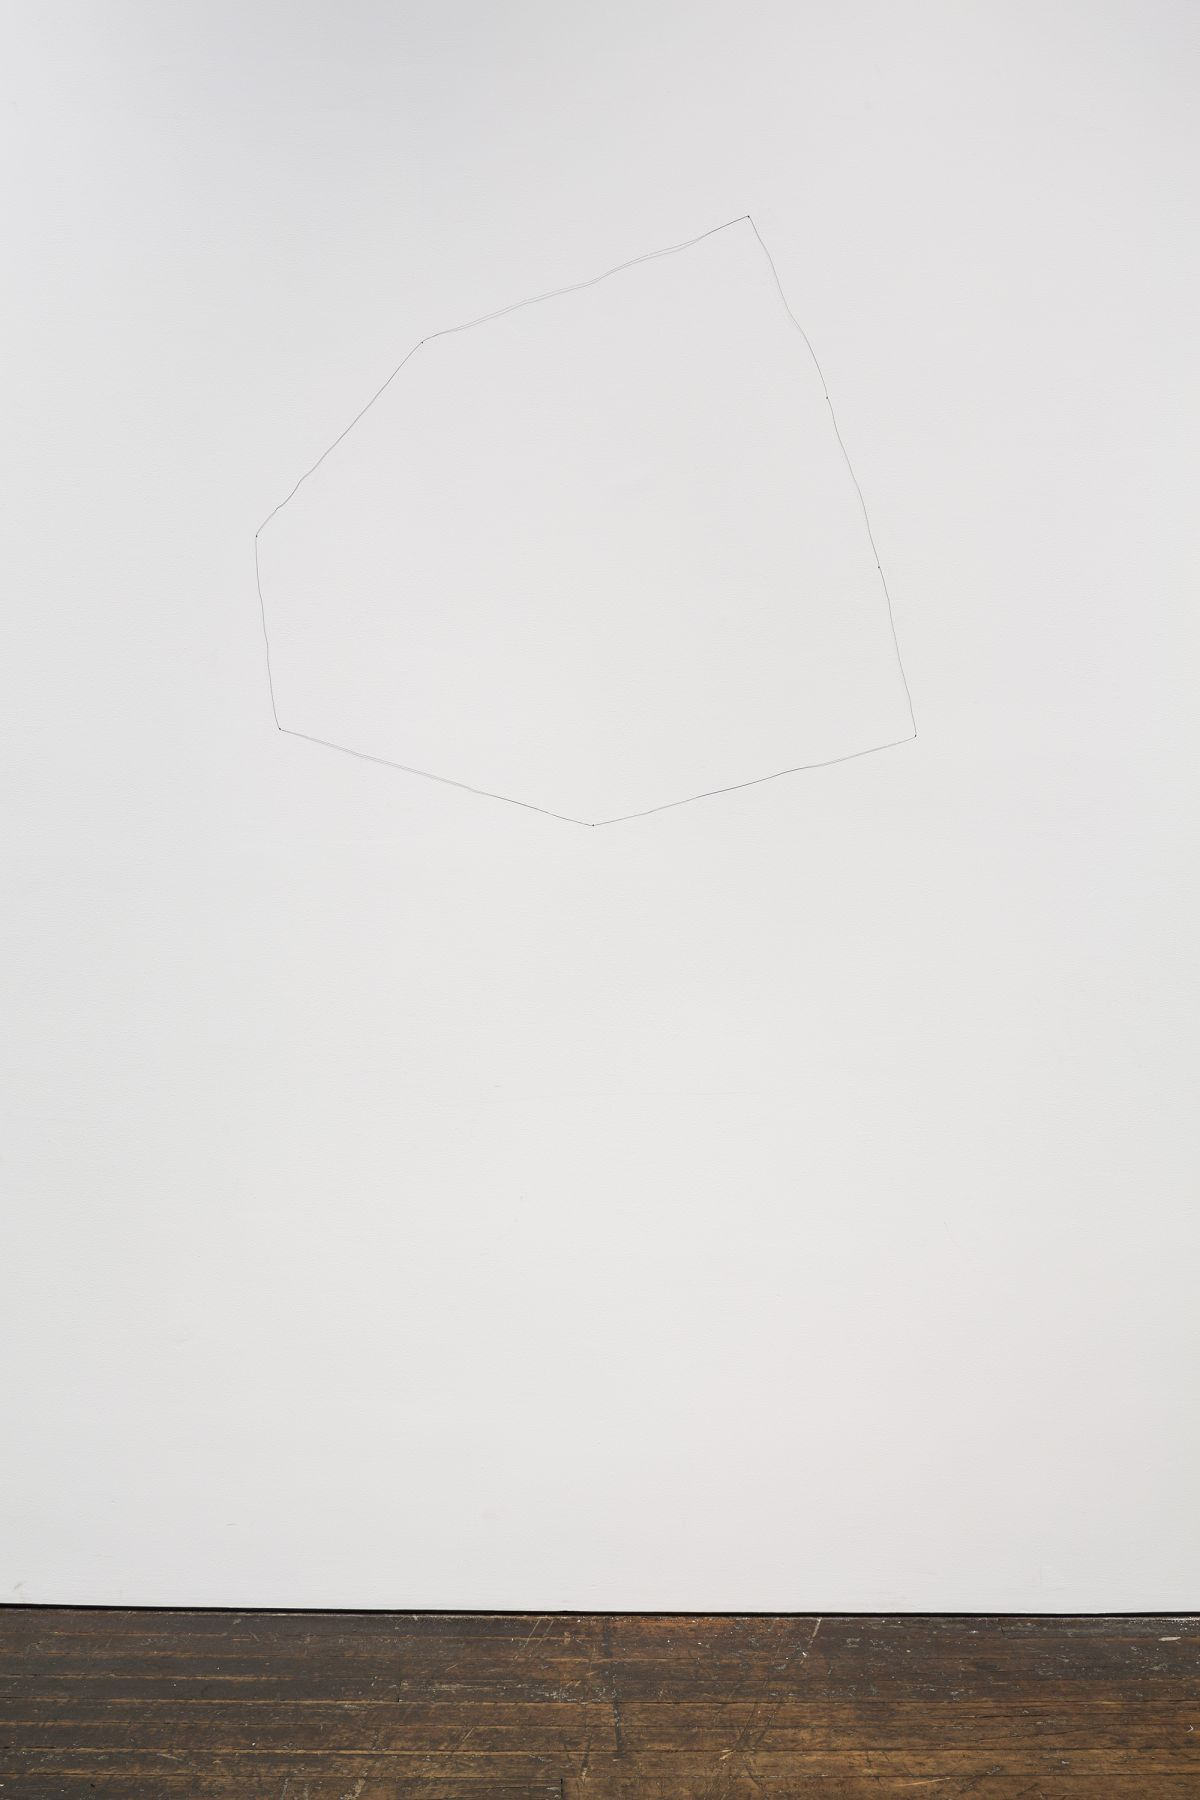 Richard Tuttle, 11th Wire Octagonal